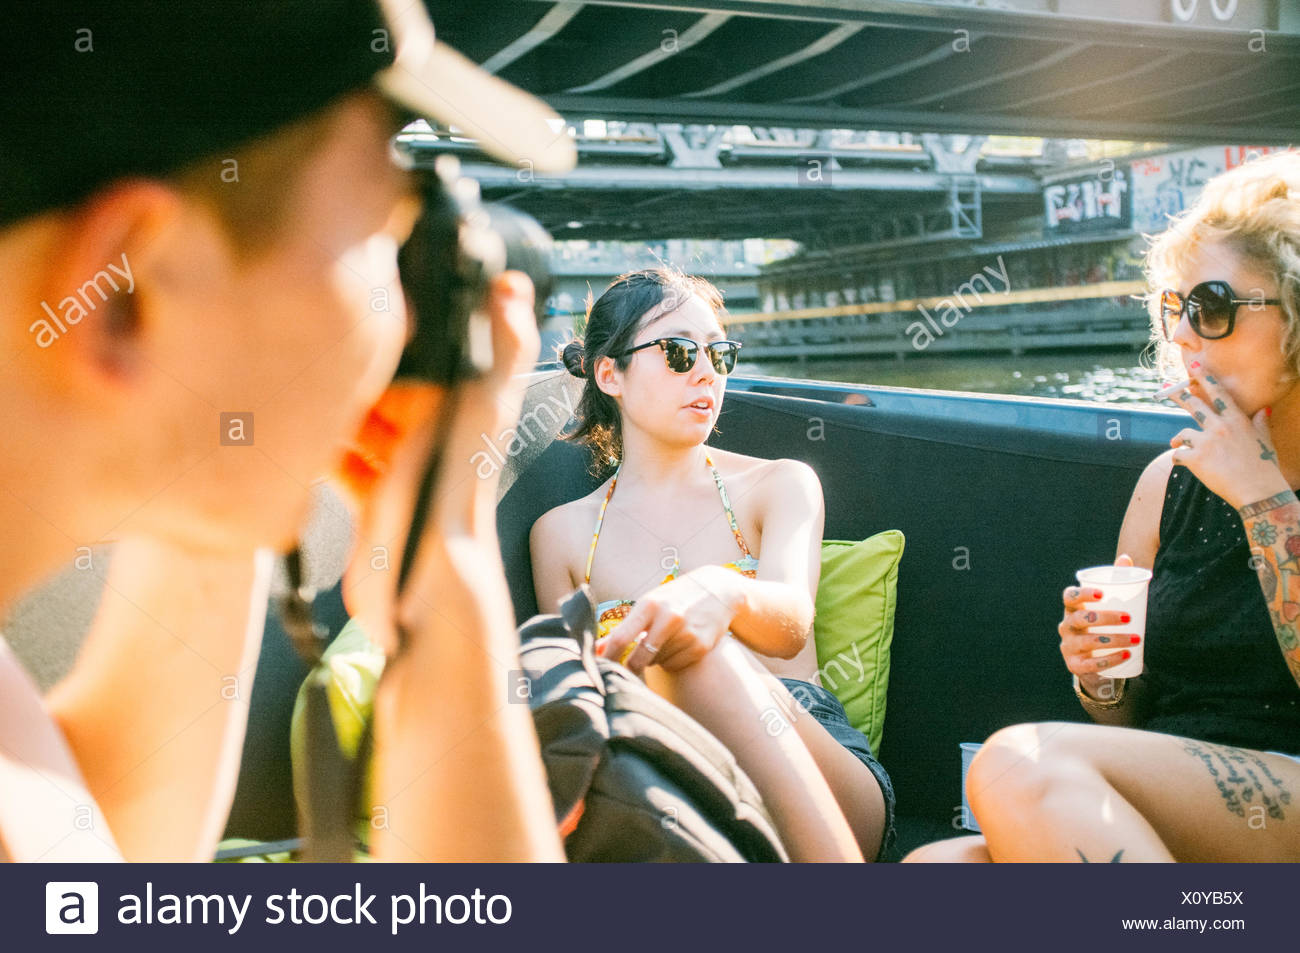 Man Photographing Women While Resting On Boat - Stock Image